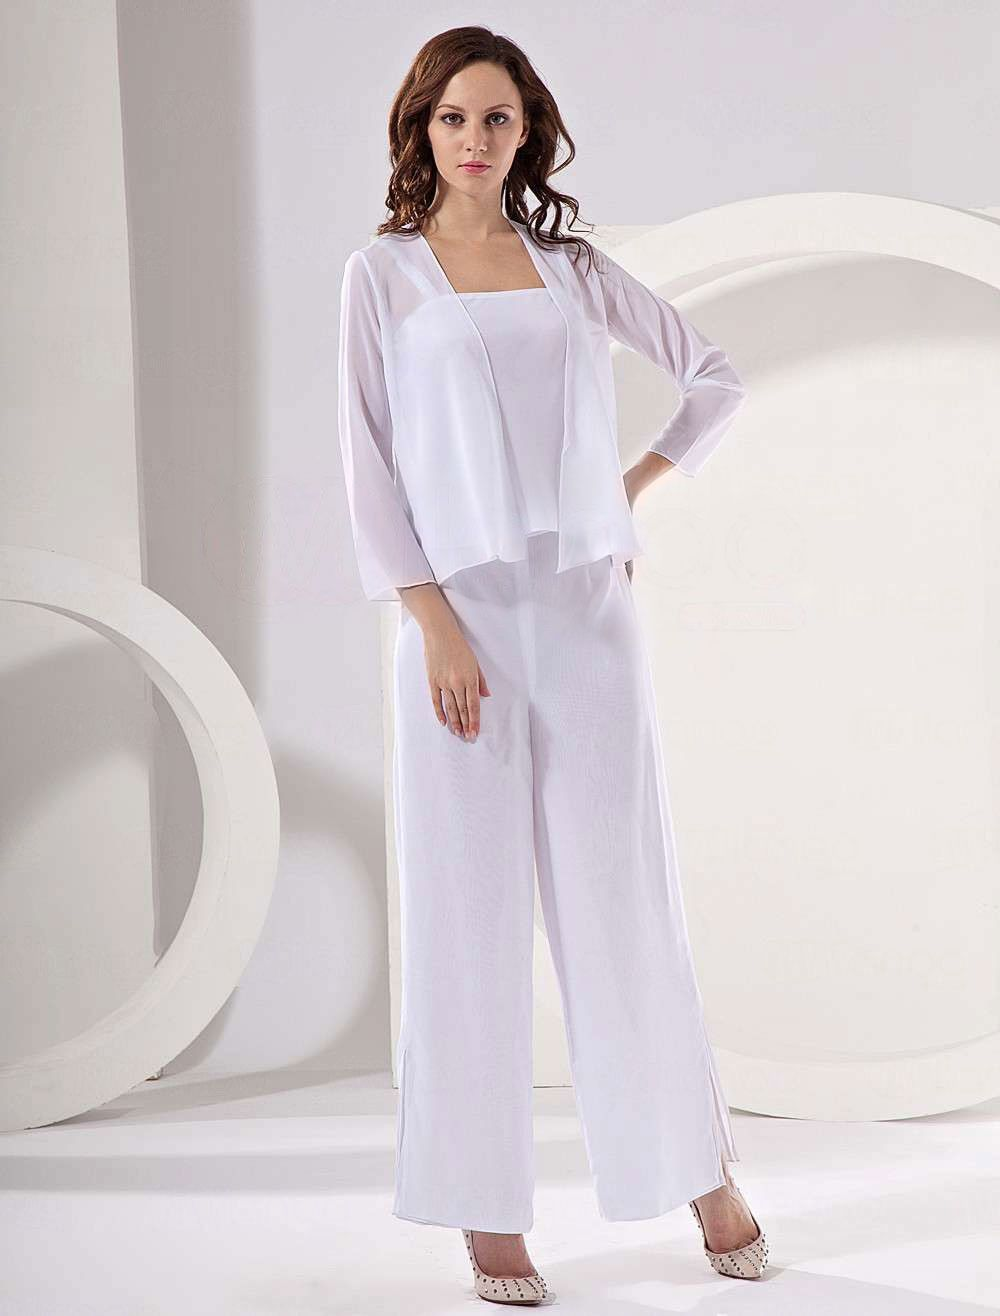 Elegant Champagne Chiffon Mother Of The Bride Pant Suits Wedding